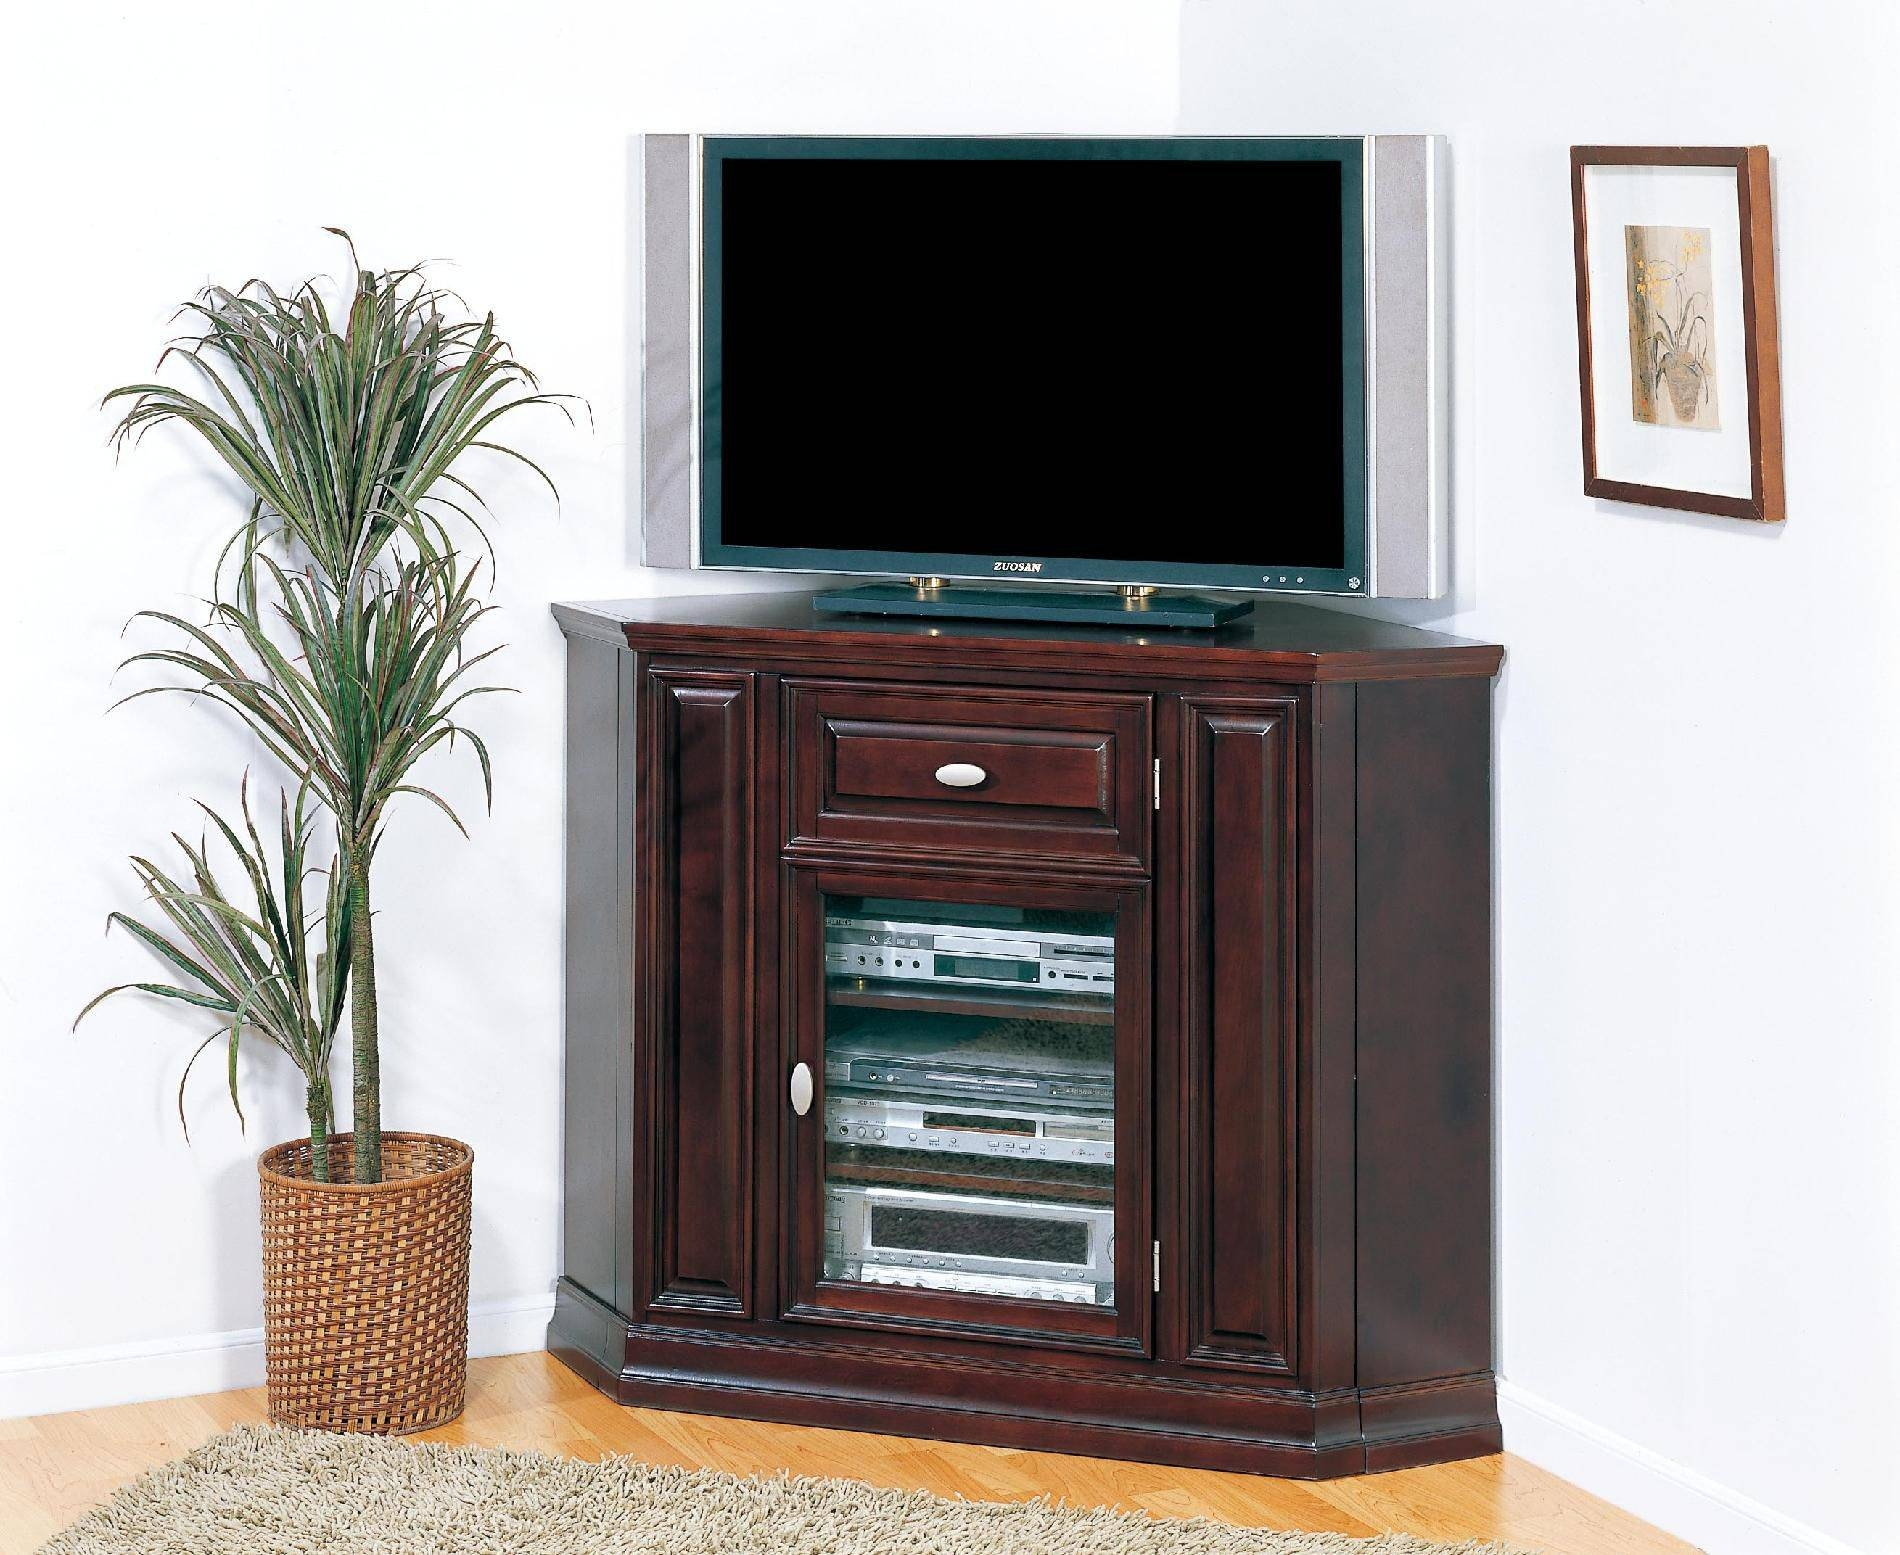 Tall Corner Tv Stand Boom S Deals On Tall Corner Tv Stands. Tall throughout Black Wood Corner Tv Stands (Image 12 of 15)